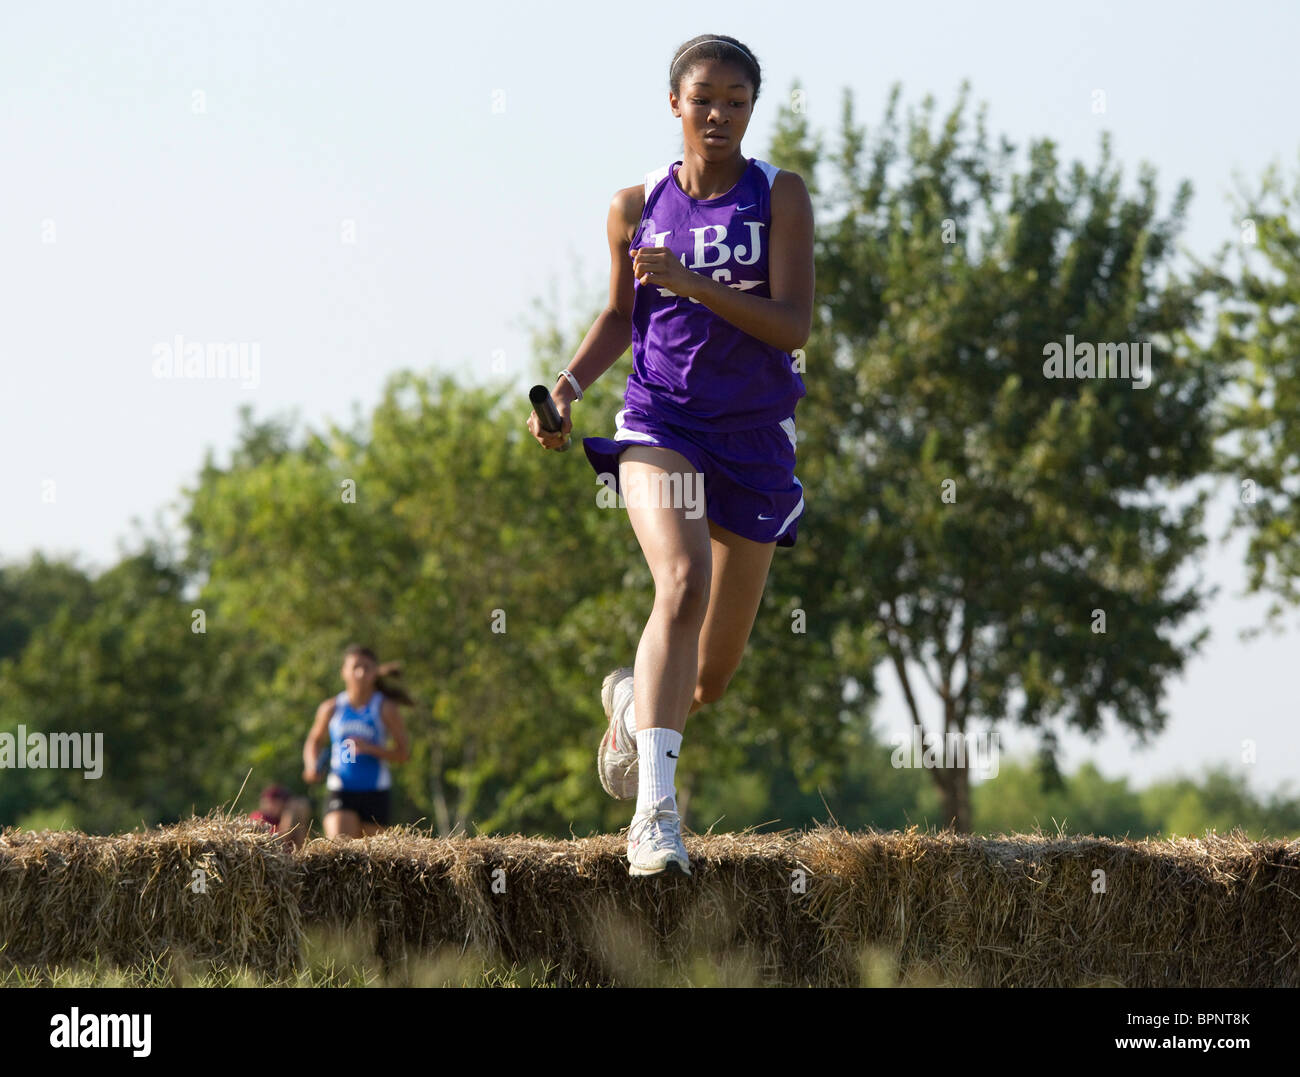 African-American female high school runner jumps hay bale on cross-country course during meet in Pflugerville, Texas - Stock Image